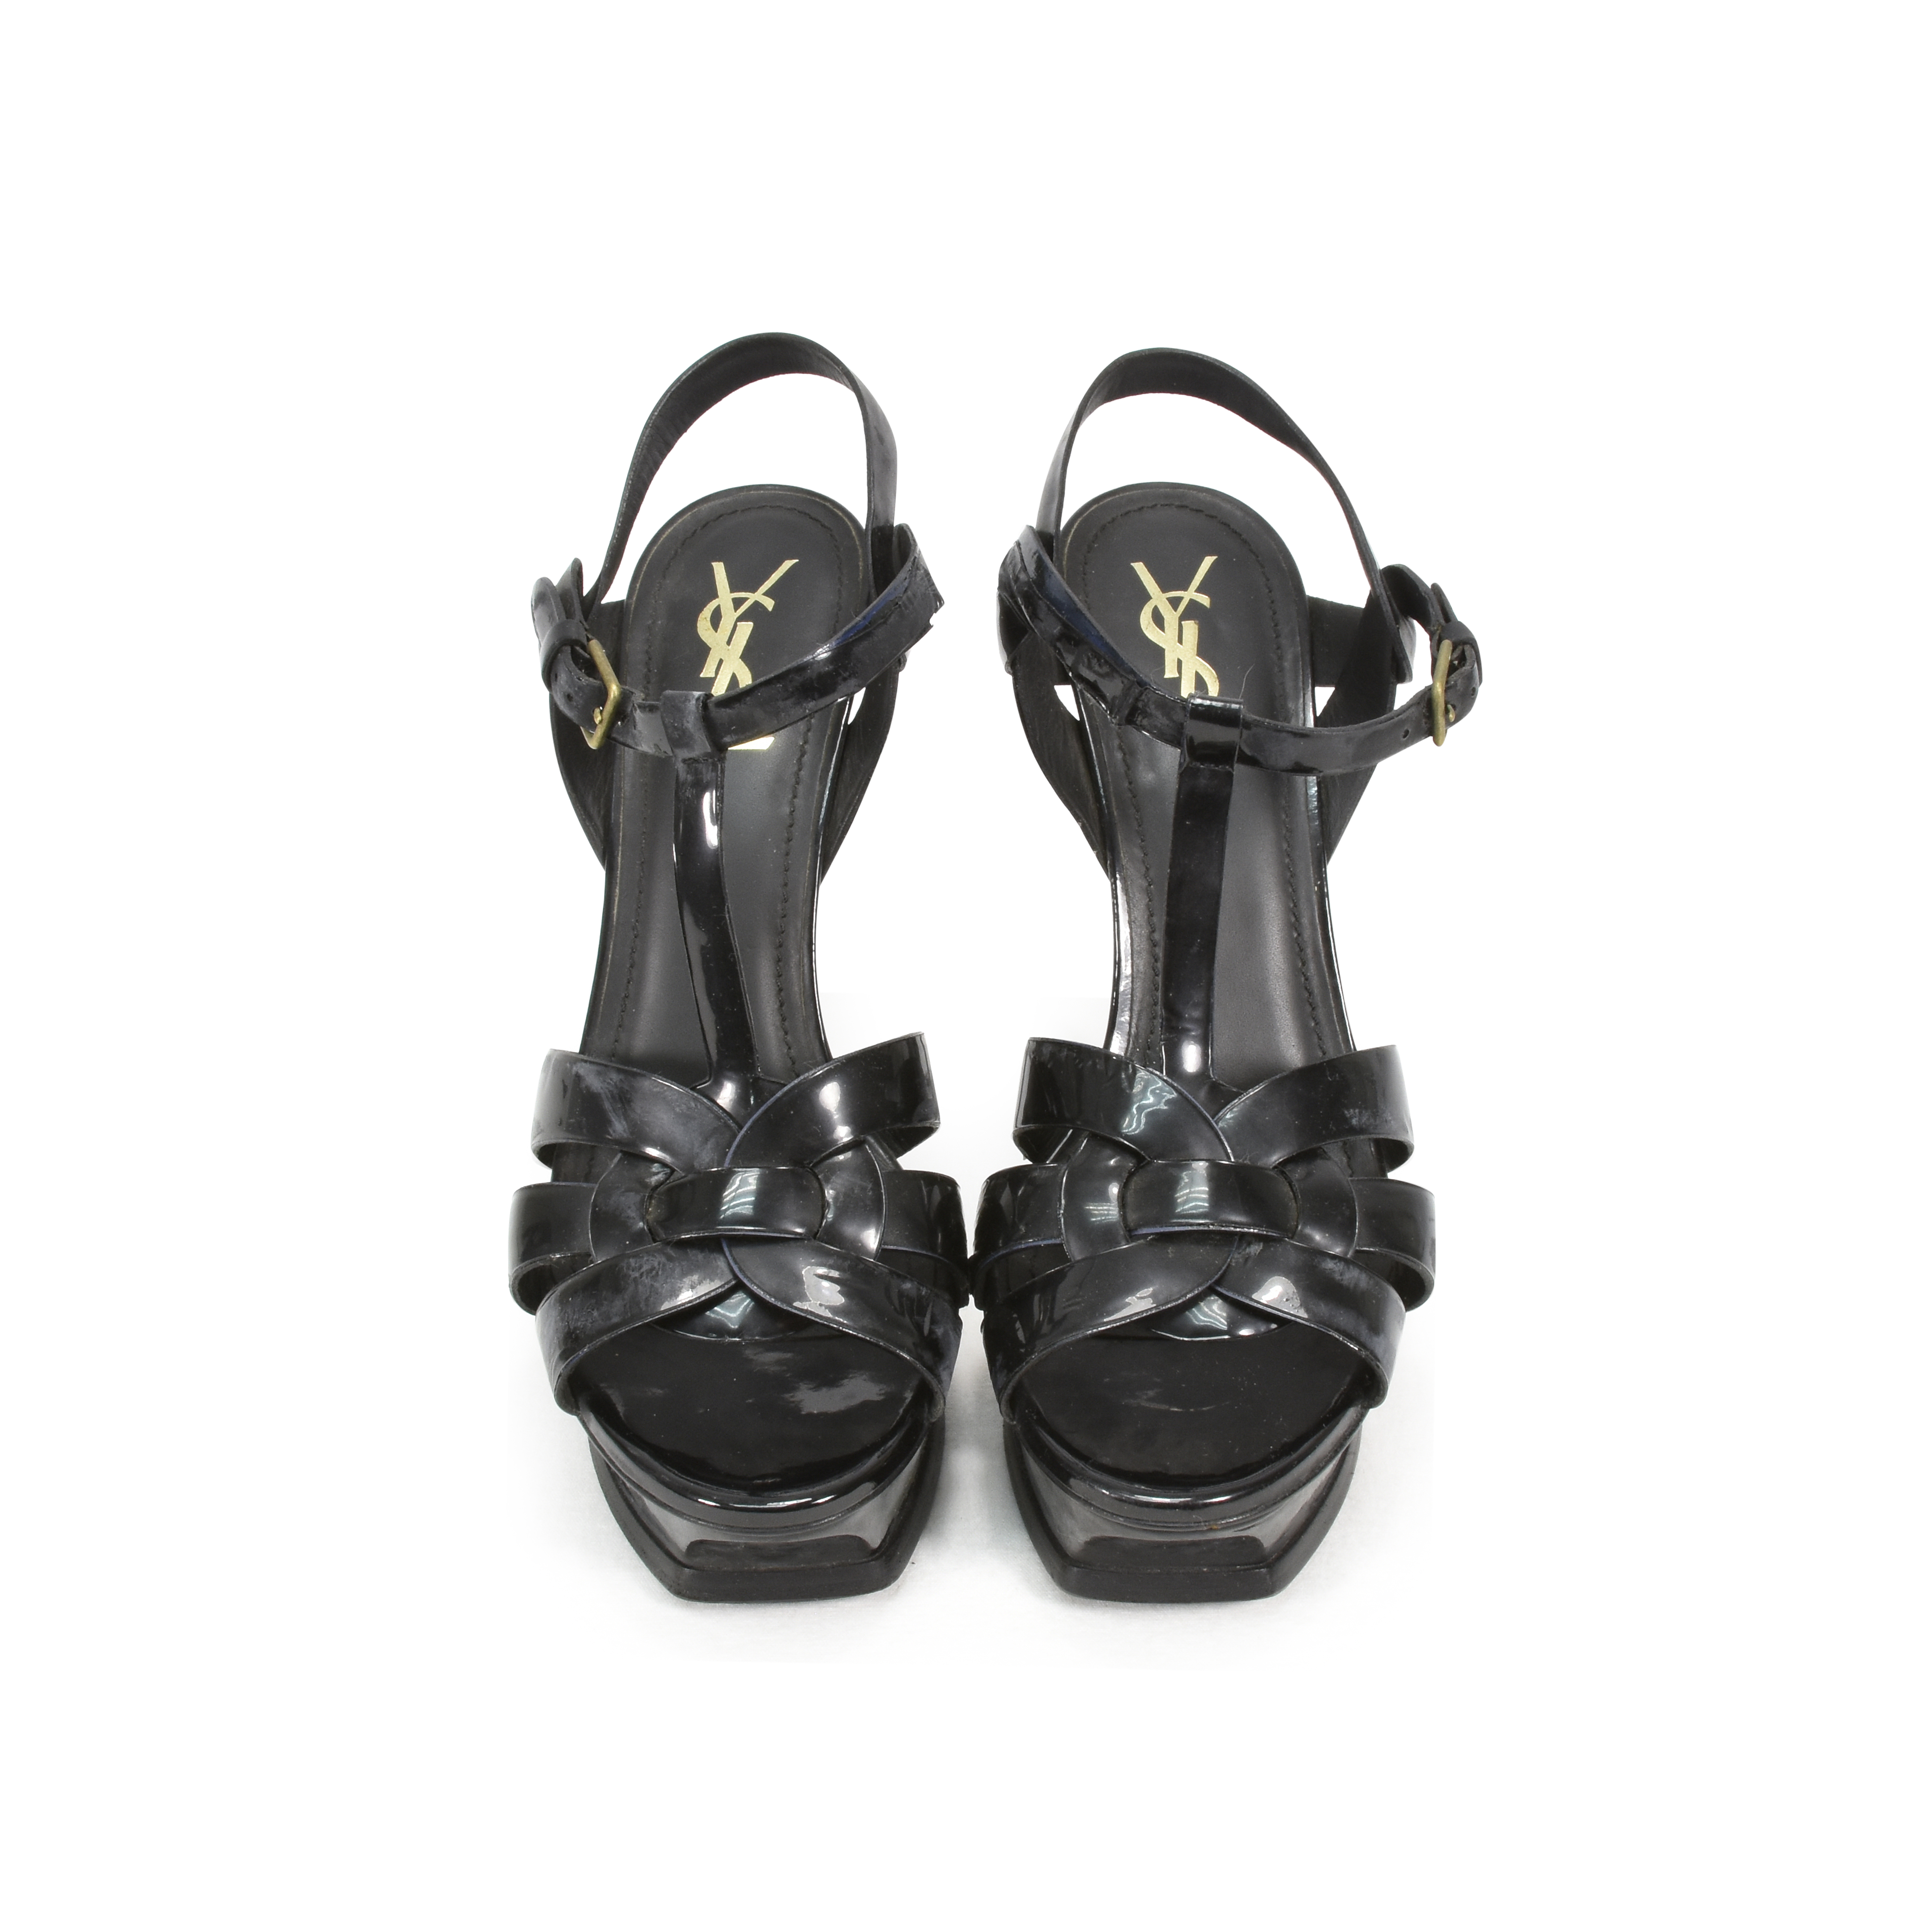 9d65be48dc3 Authentic Pre Owned Yves Saint Laurent Patent Tribute Sandals (PSS-354-00018)